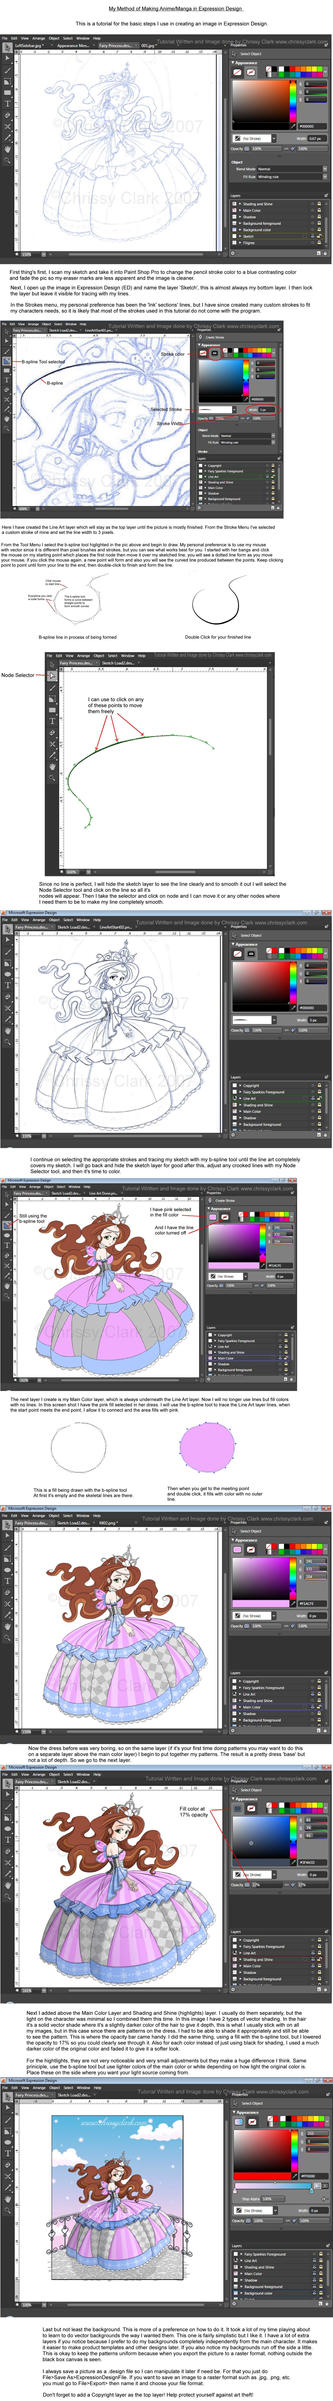 ExpressionDesign:MakingAnime by clrkrex